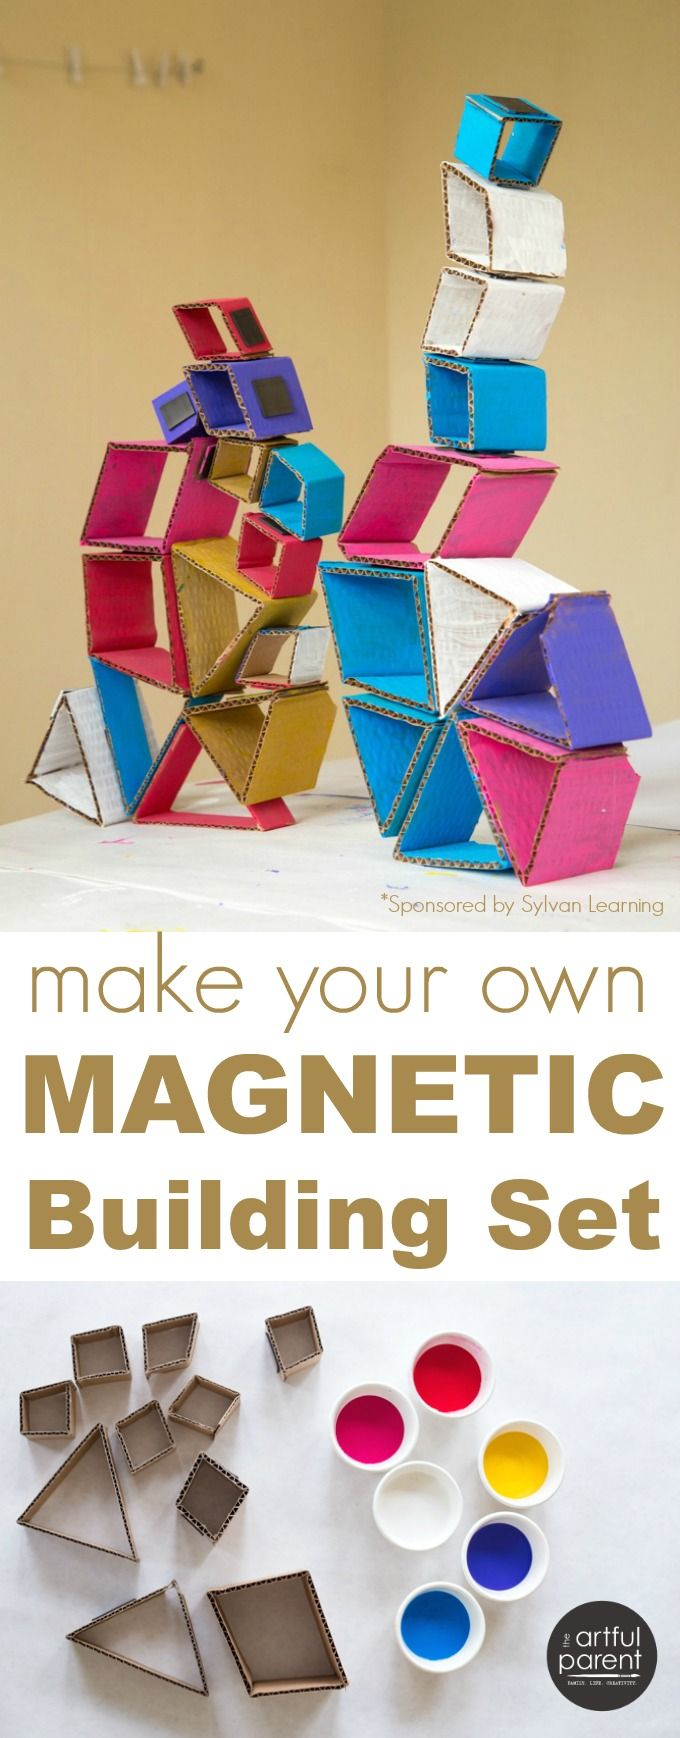 How to Make Your Own Magnetic Building Set with Cardboard